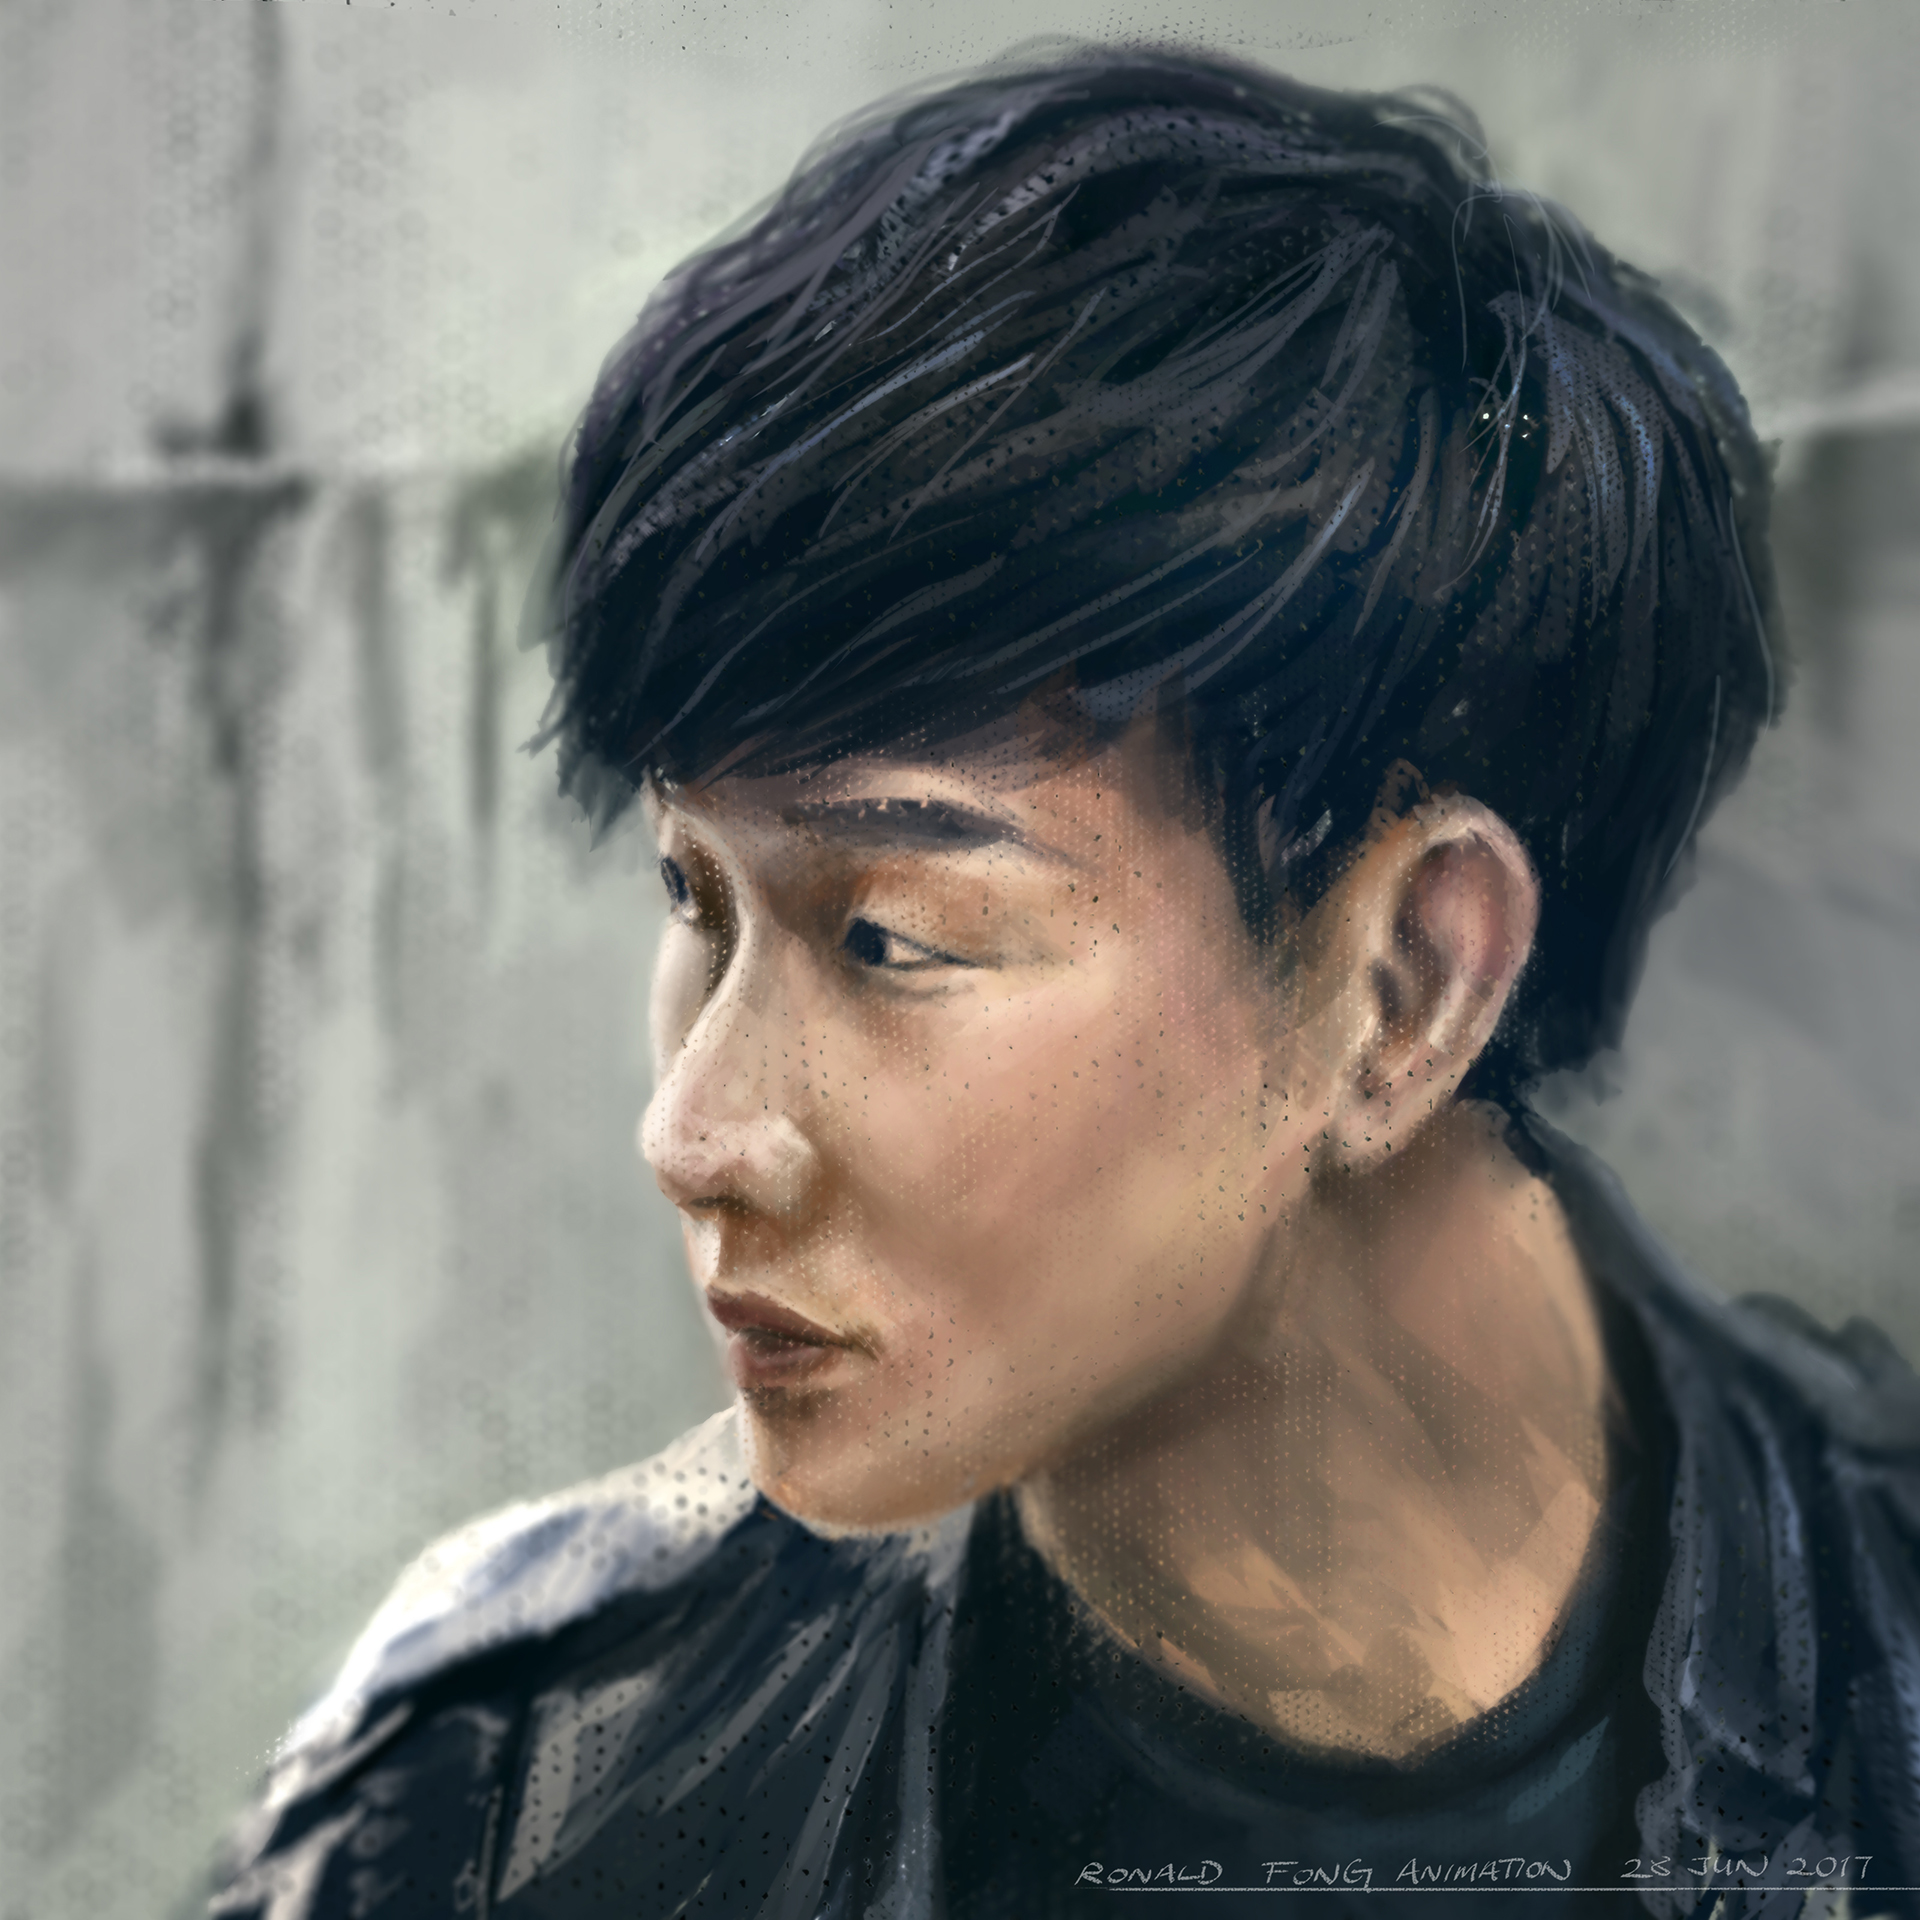 JJ Lin Digital Painting - Ronald Fong Painting Faces Everyday Day 10 of 30